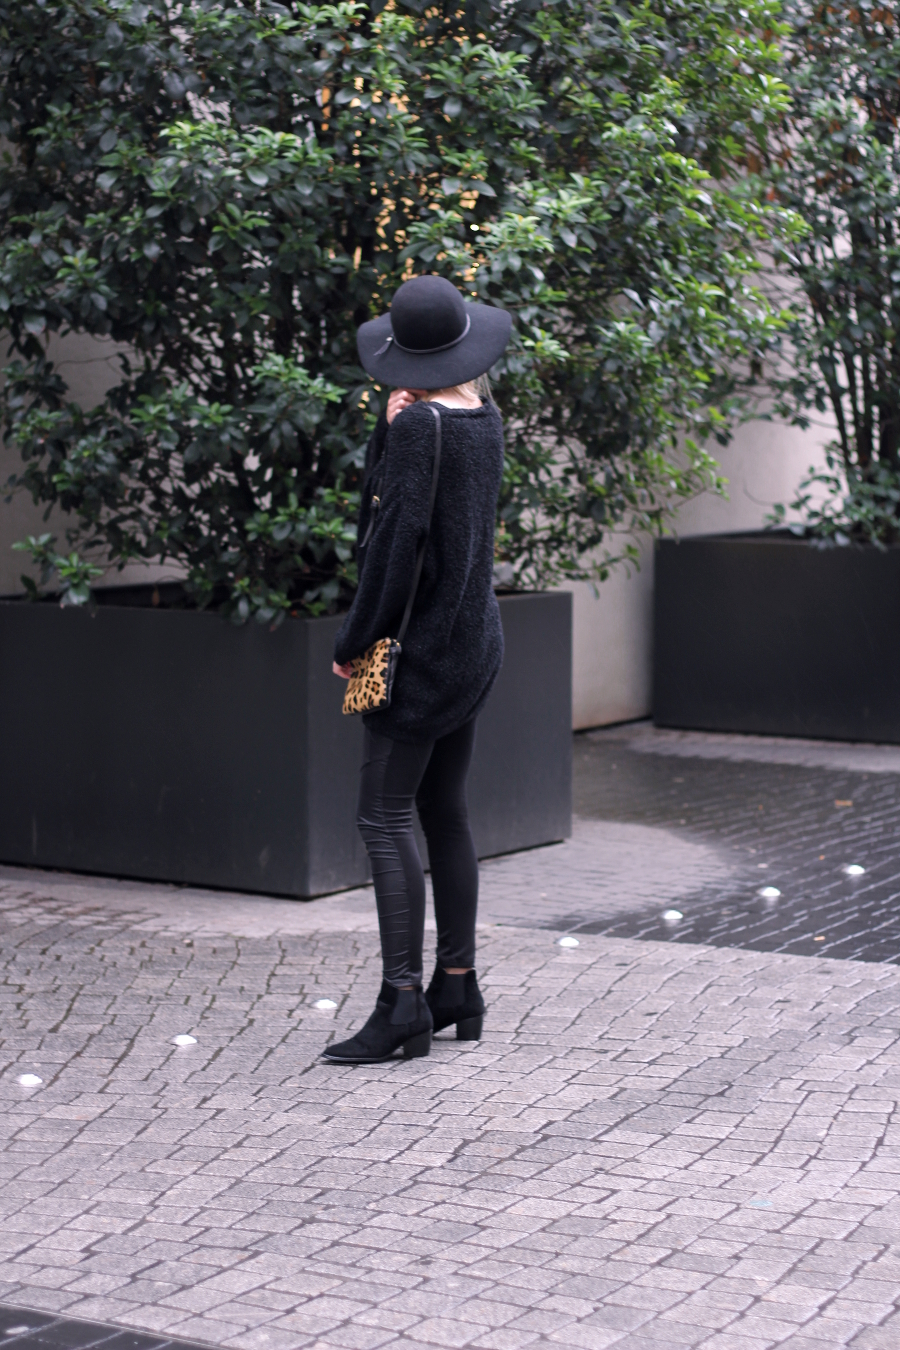 outfit-midsummer-black-silouette-girl-woman-fashionblogger-frankfurt-chelsea-boots-all-leopard-print-special